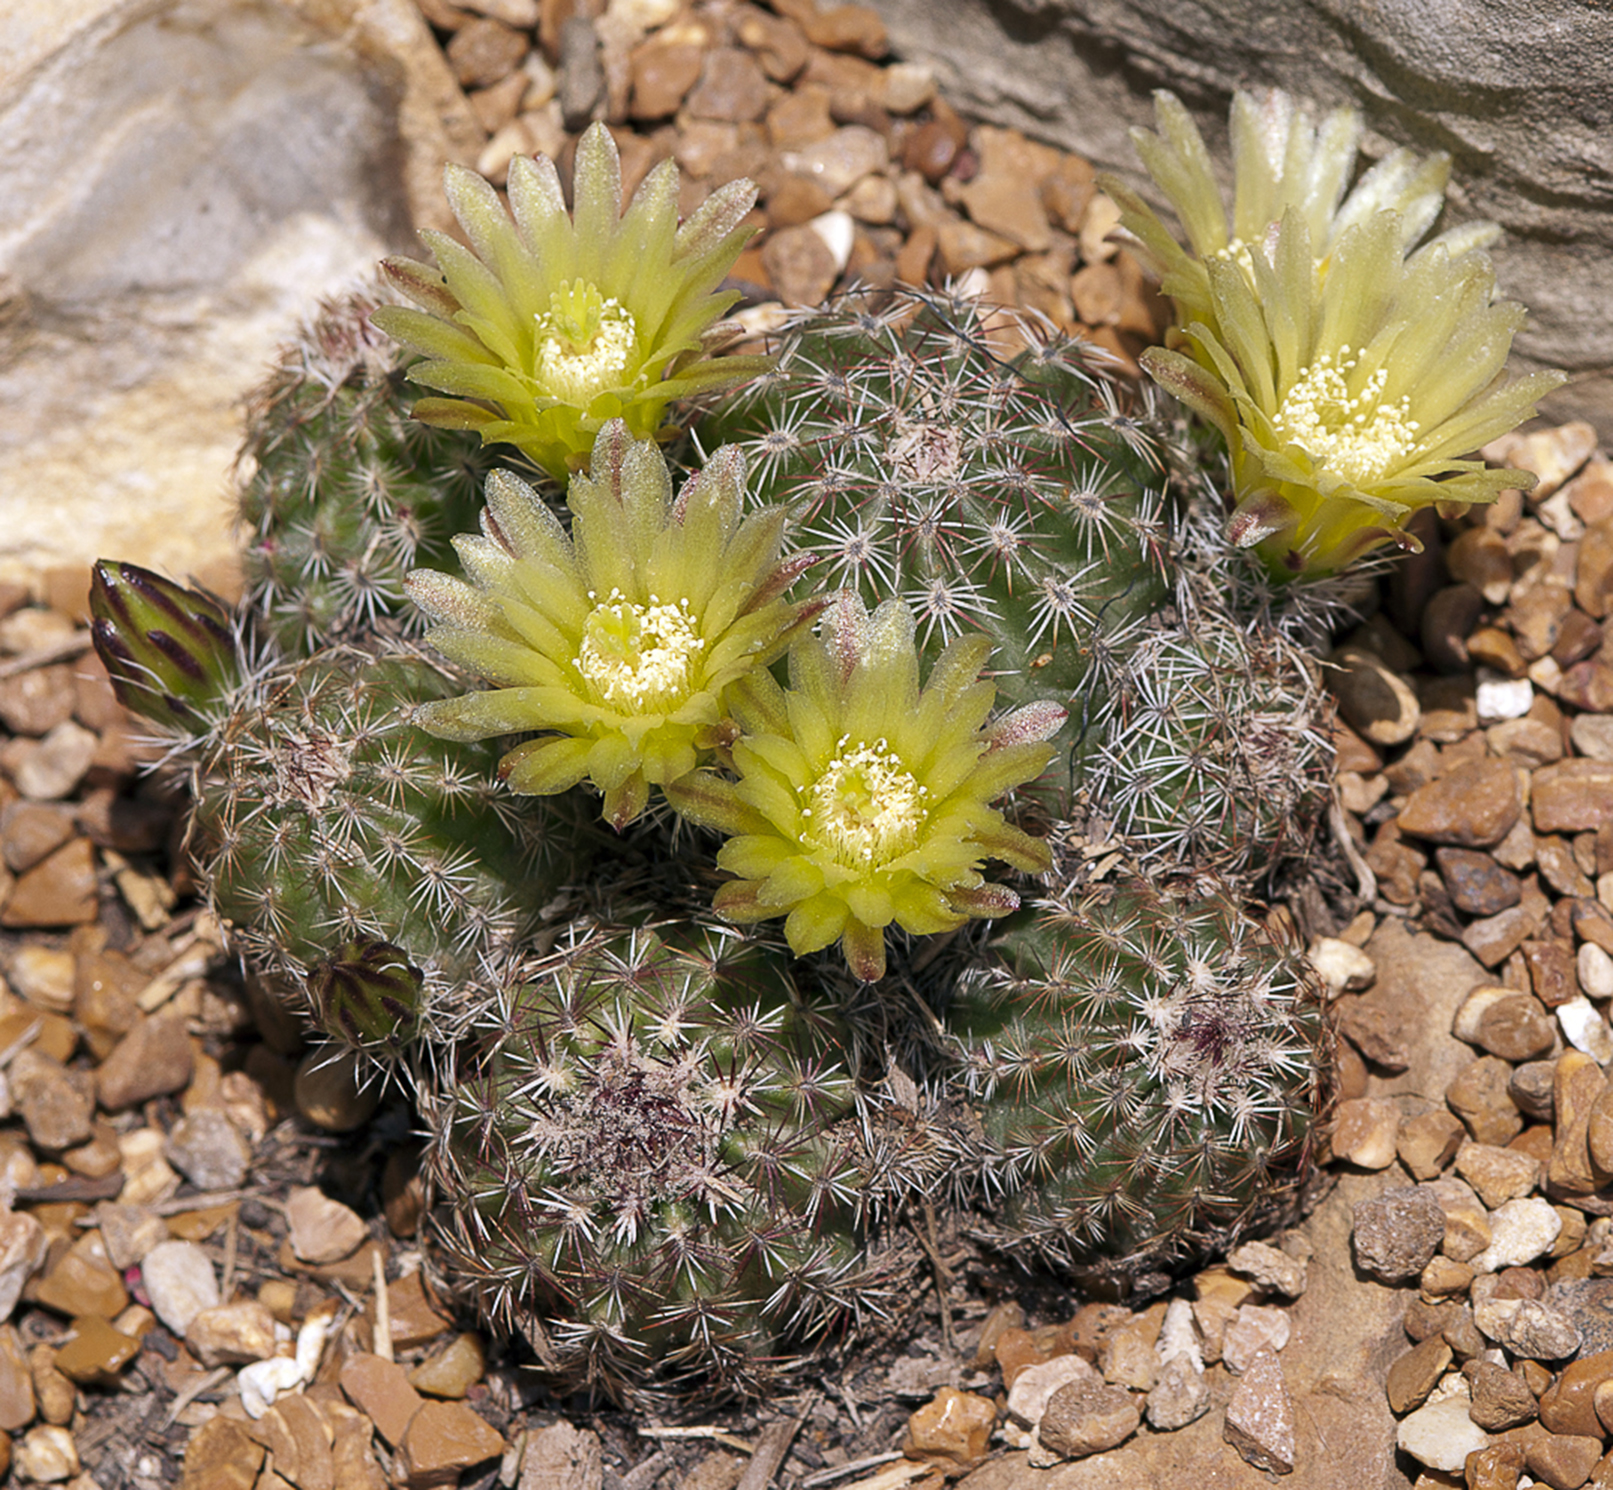 A picture of Echinocereus viridiflorus